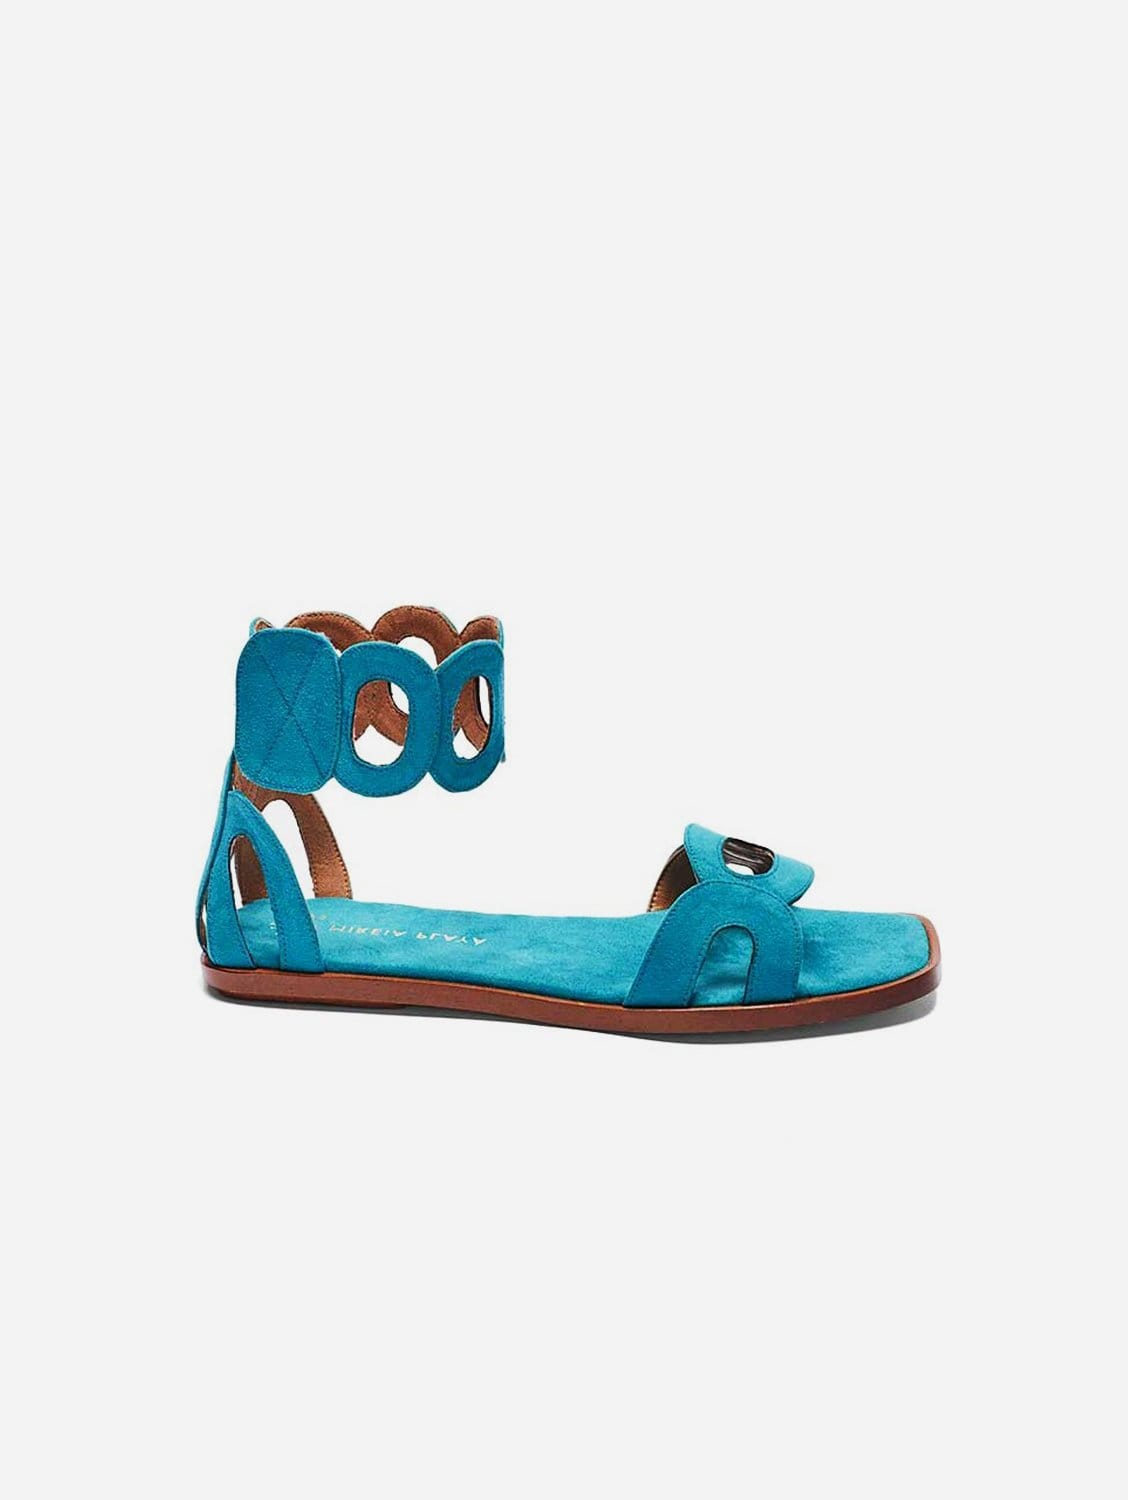 Hortensia Recycled Polyester Vegan Suede Ankle Sandal | Aquamarine